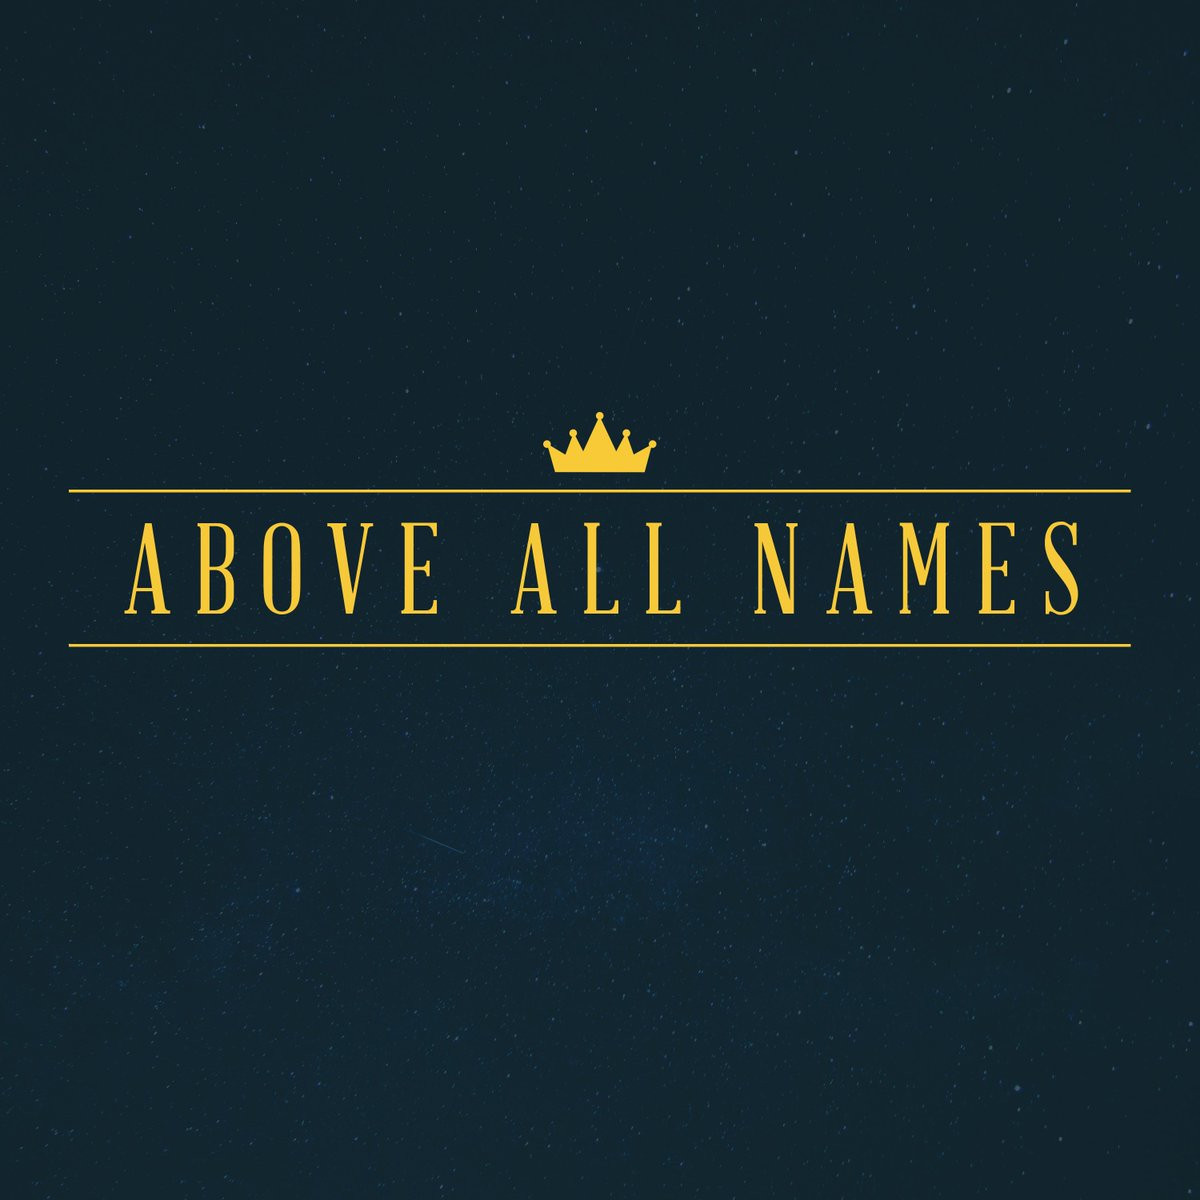 Visit https://t.co/dGeTm9Bbuv to hear from John Robertson about how God is a Wonderful Counselor as we continue our Above All Names series. Link: https://t.co/KraT0qriZi https://t.co/sUfXZPvR4J